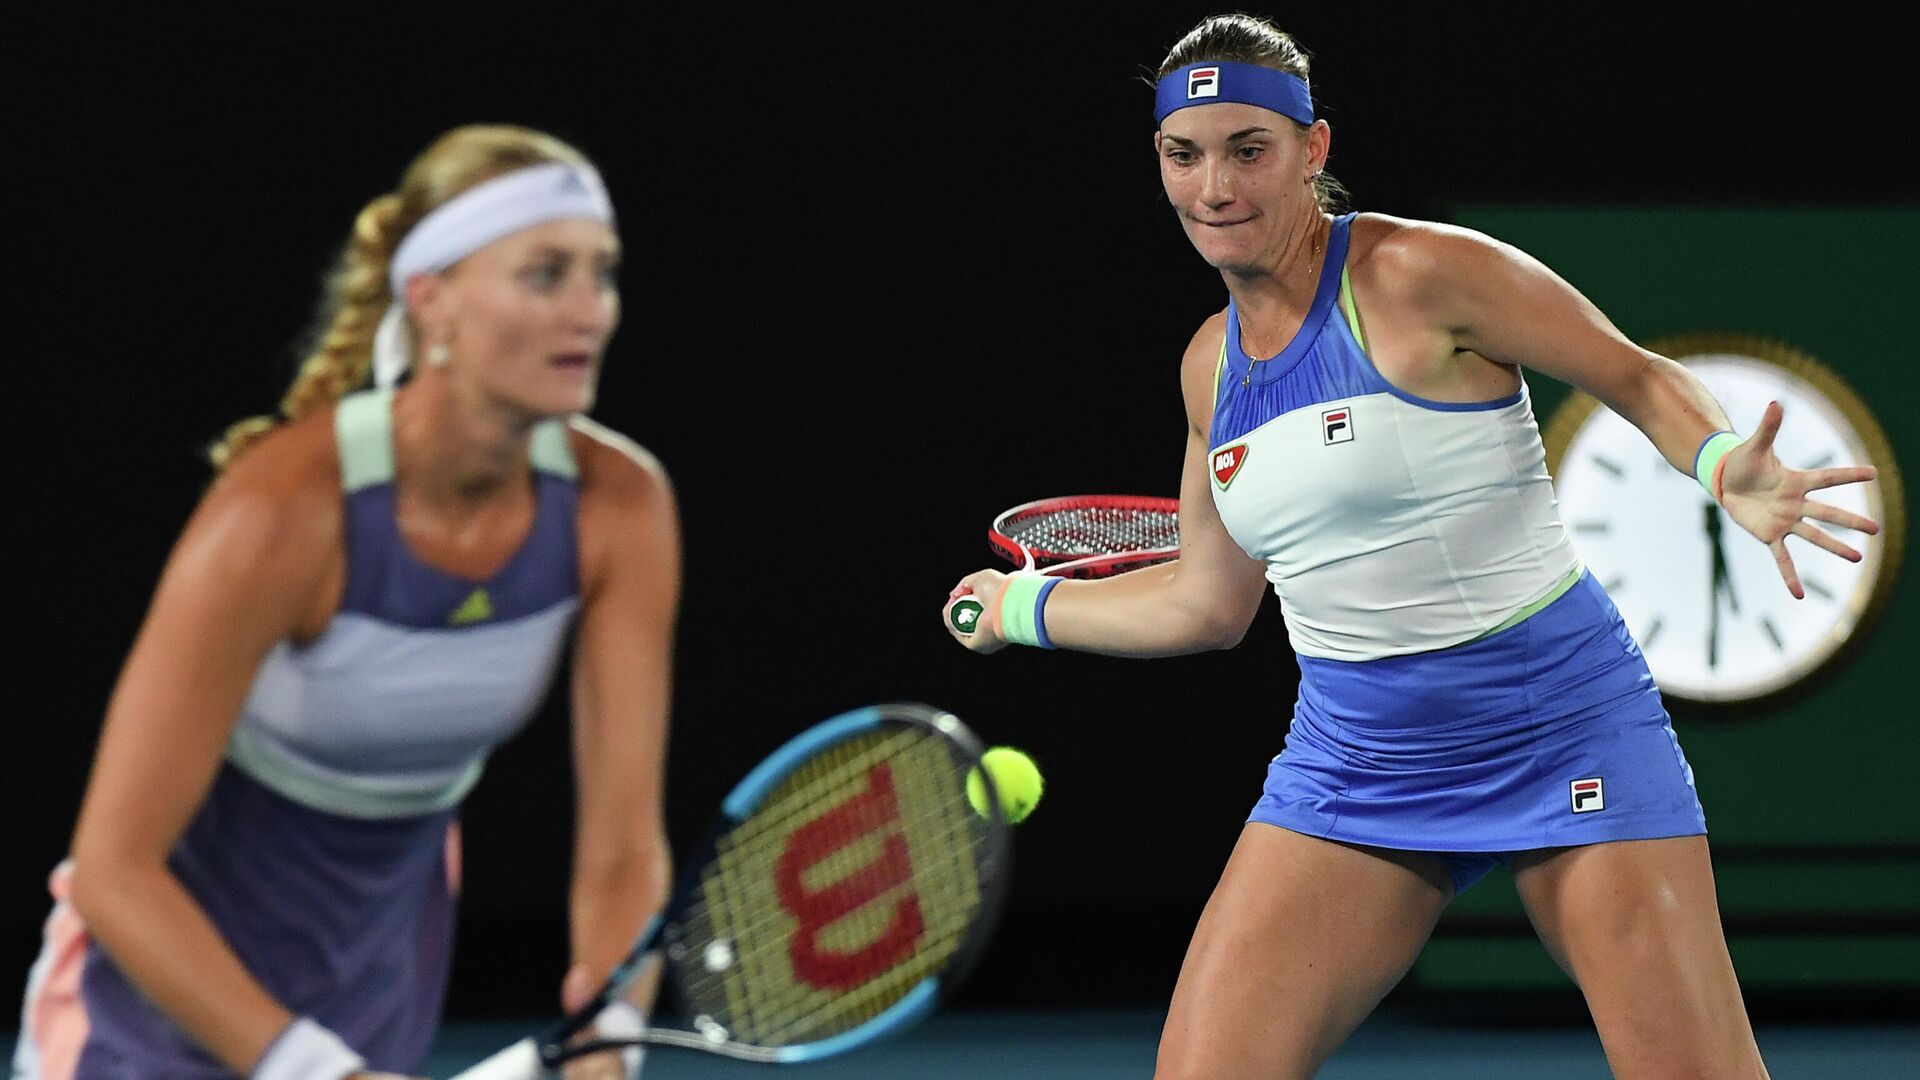 Hungary's Timea Babos (R) and France's Kristina Mladenovic (L) play a point against Taiwan's Hsieh Su-wei and Czech Republic's Barbora Strycova during the women's doubles final on day twelve of the Australian Open tennis tournament in Melbourne on January 31, 2020. (Photo by Greg Wood / AFP) / IMAGE RESTRICTED TO EDITORIAL USE - STRICTLY NO COMMERCIAL USE - РИА Новости, 1920, 05.09.2020